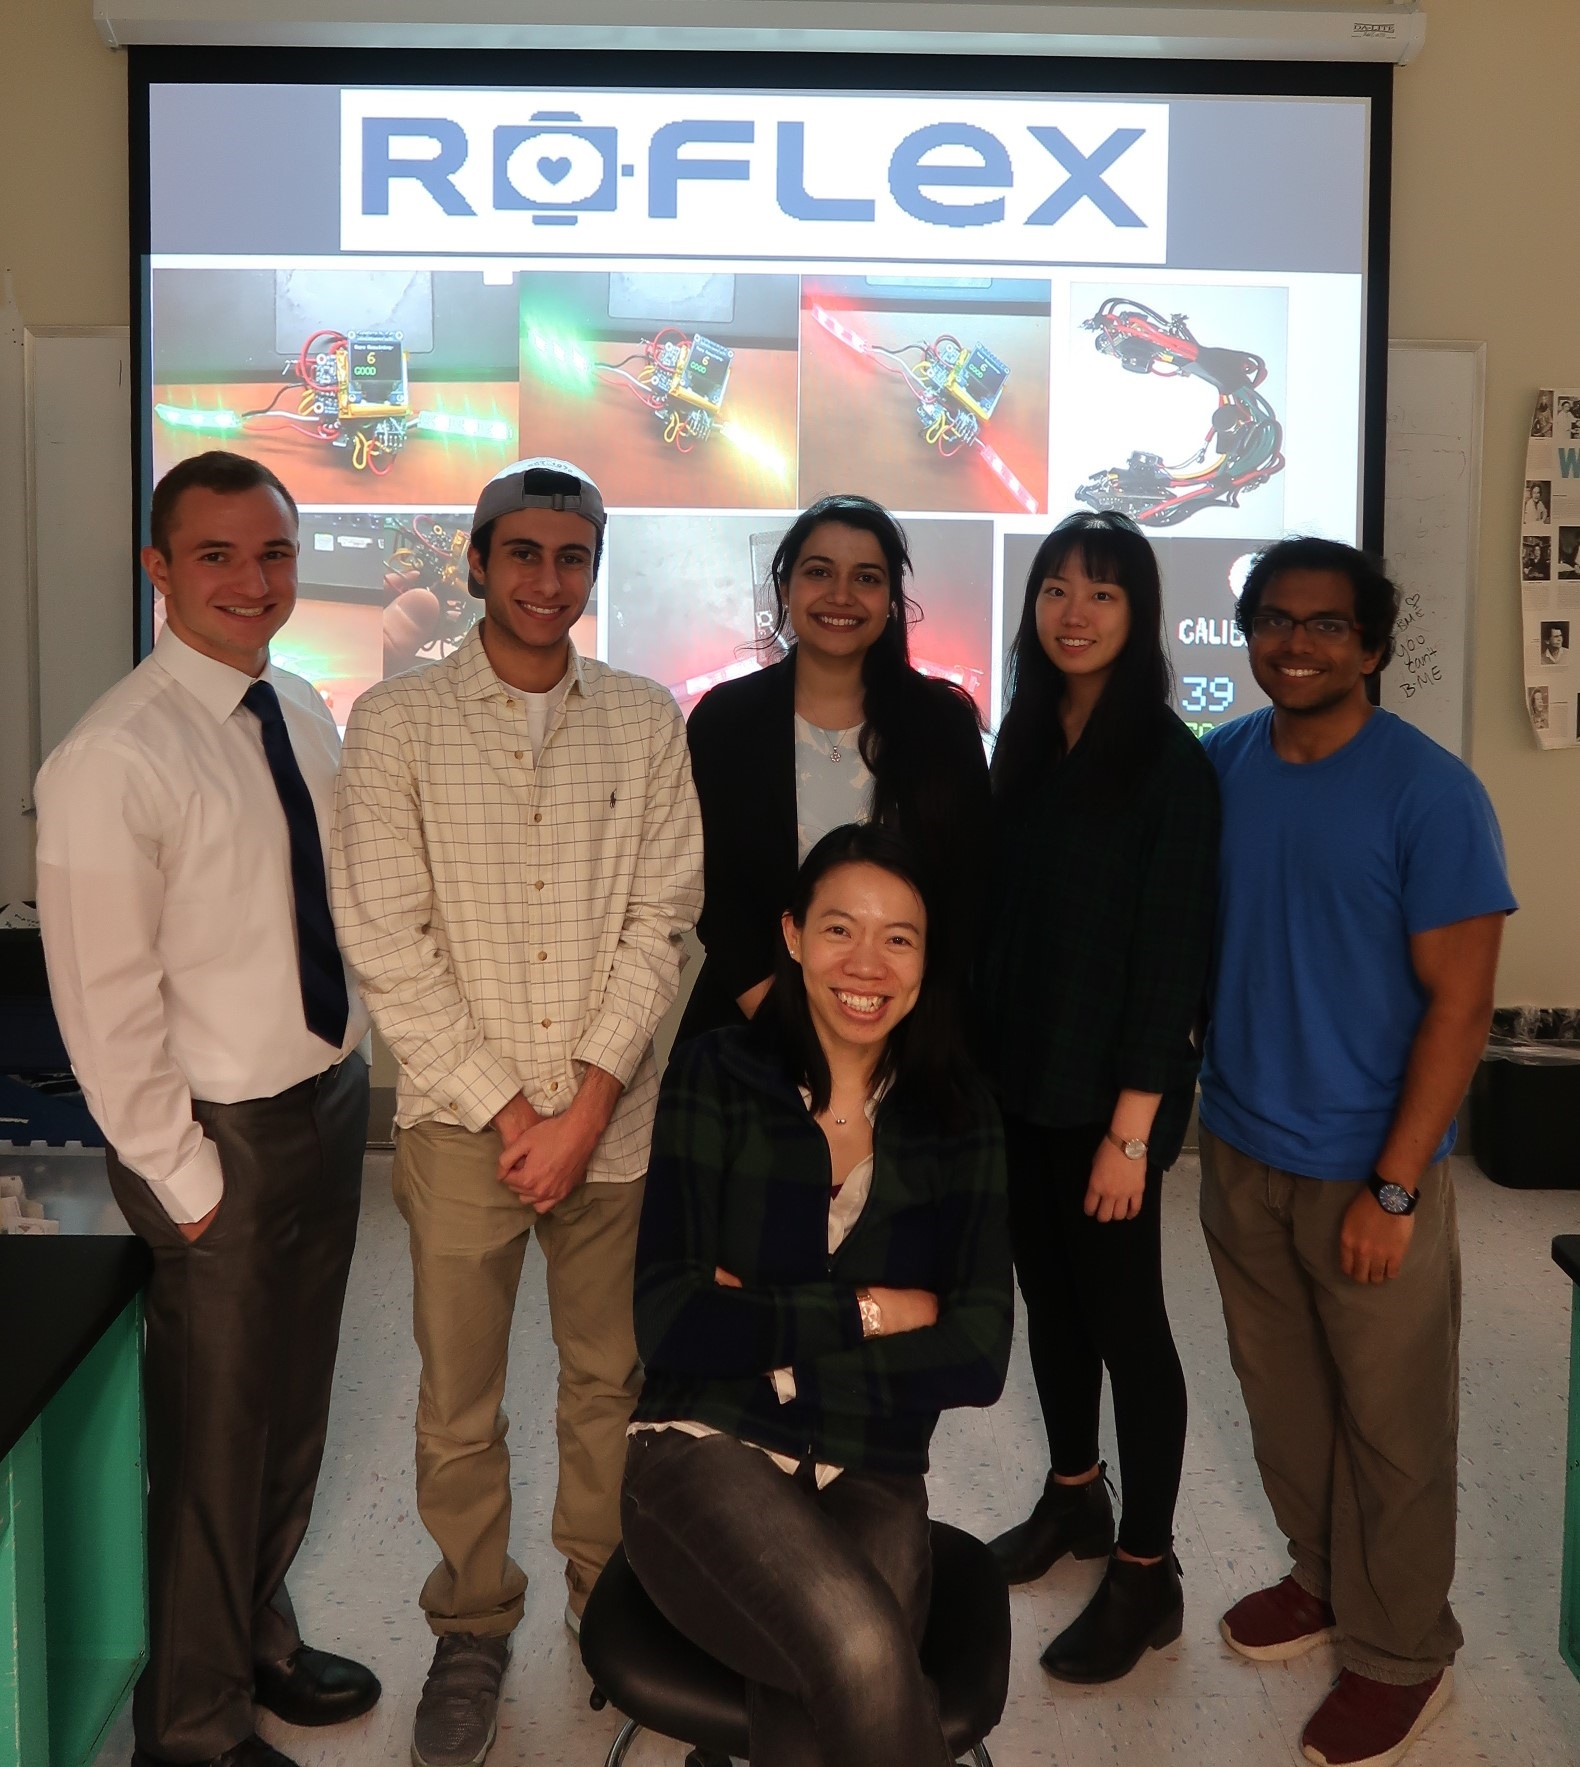 The Roflex team of BME students with project advisor M. Ete Chan.